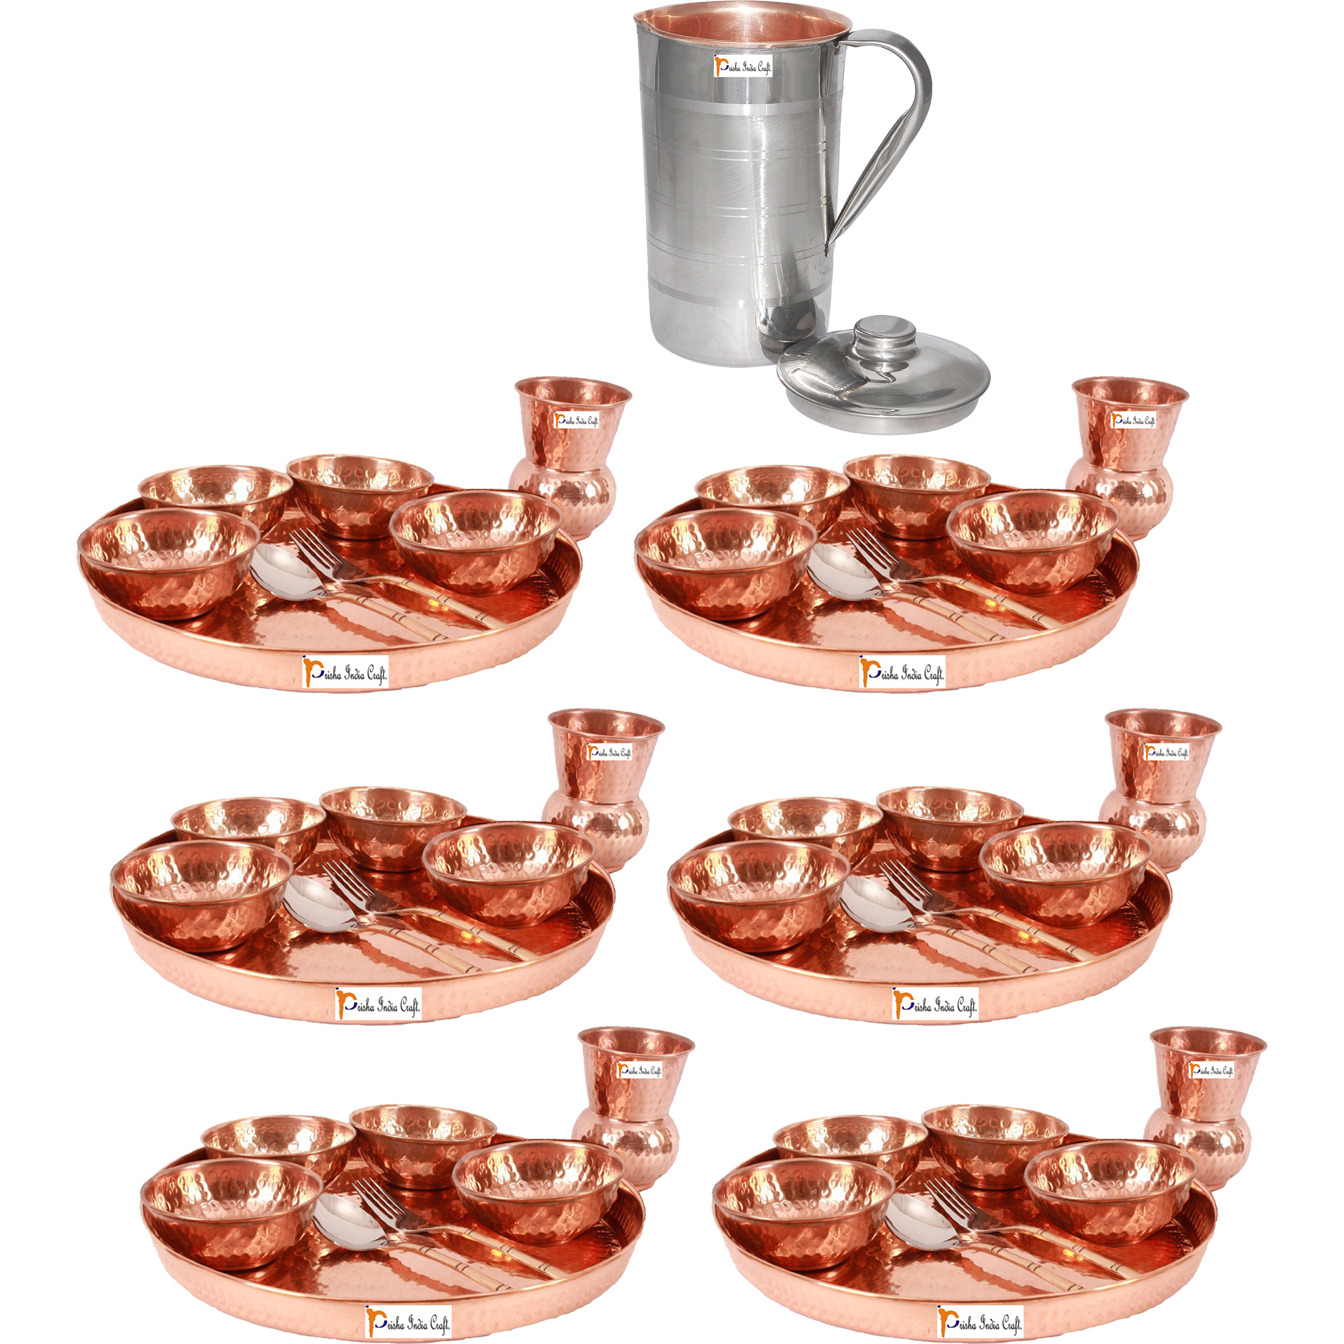 Prisha India Craft B. Set of 6 Dinnerware Traditional 100% Pure Copper Dinner Set of Thali Plate, Bowls, Glass and Spoon, Dia 12  With 1 Luxury Style Pitcher Jug - Christmas Gift